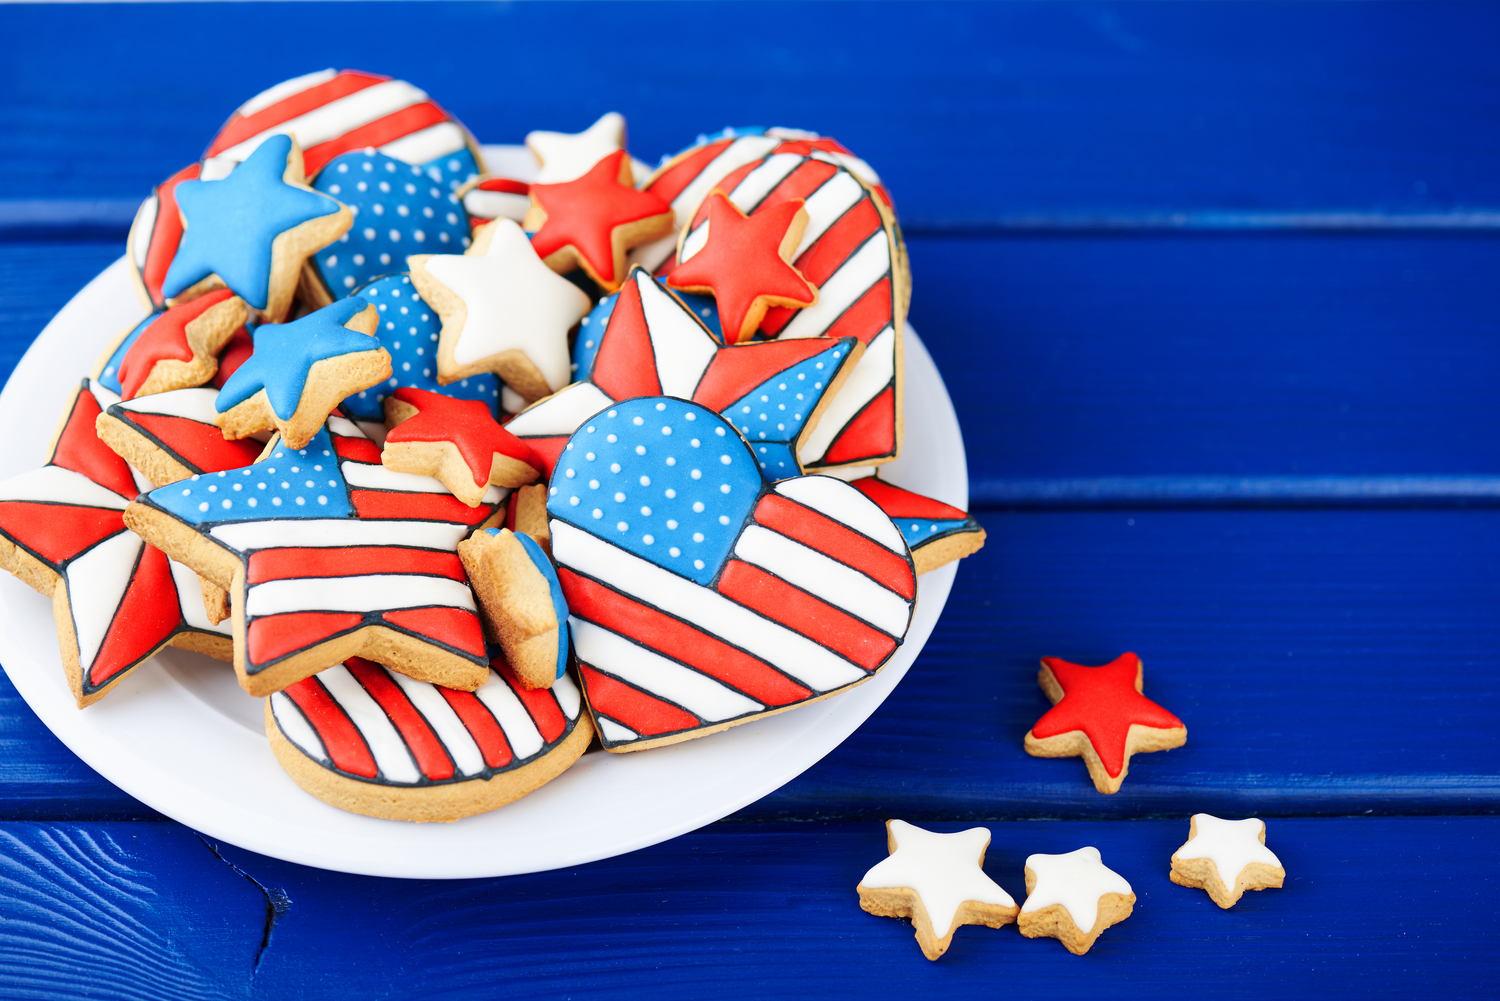 20 DIY Home Decor Ideas for the 4th of July